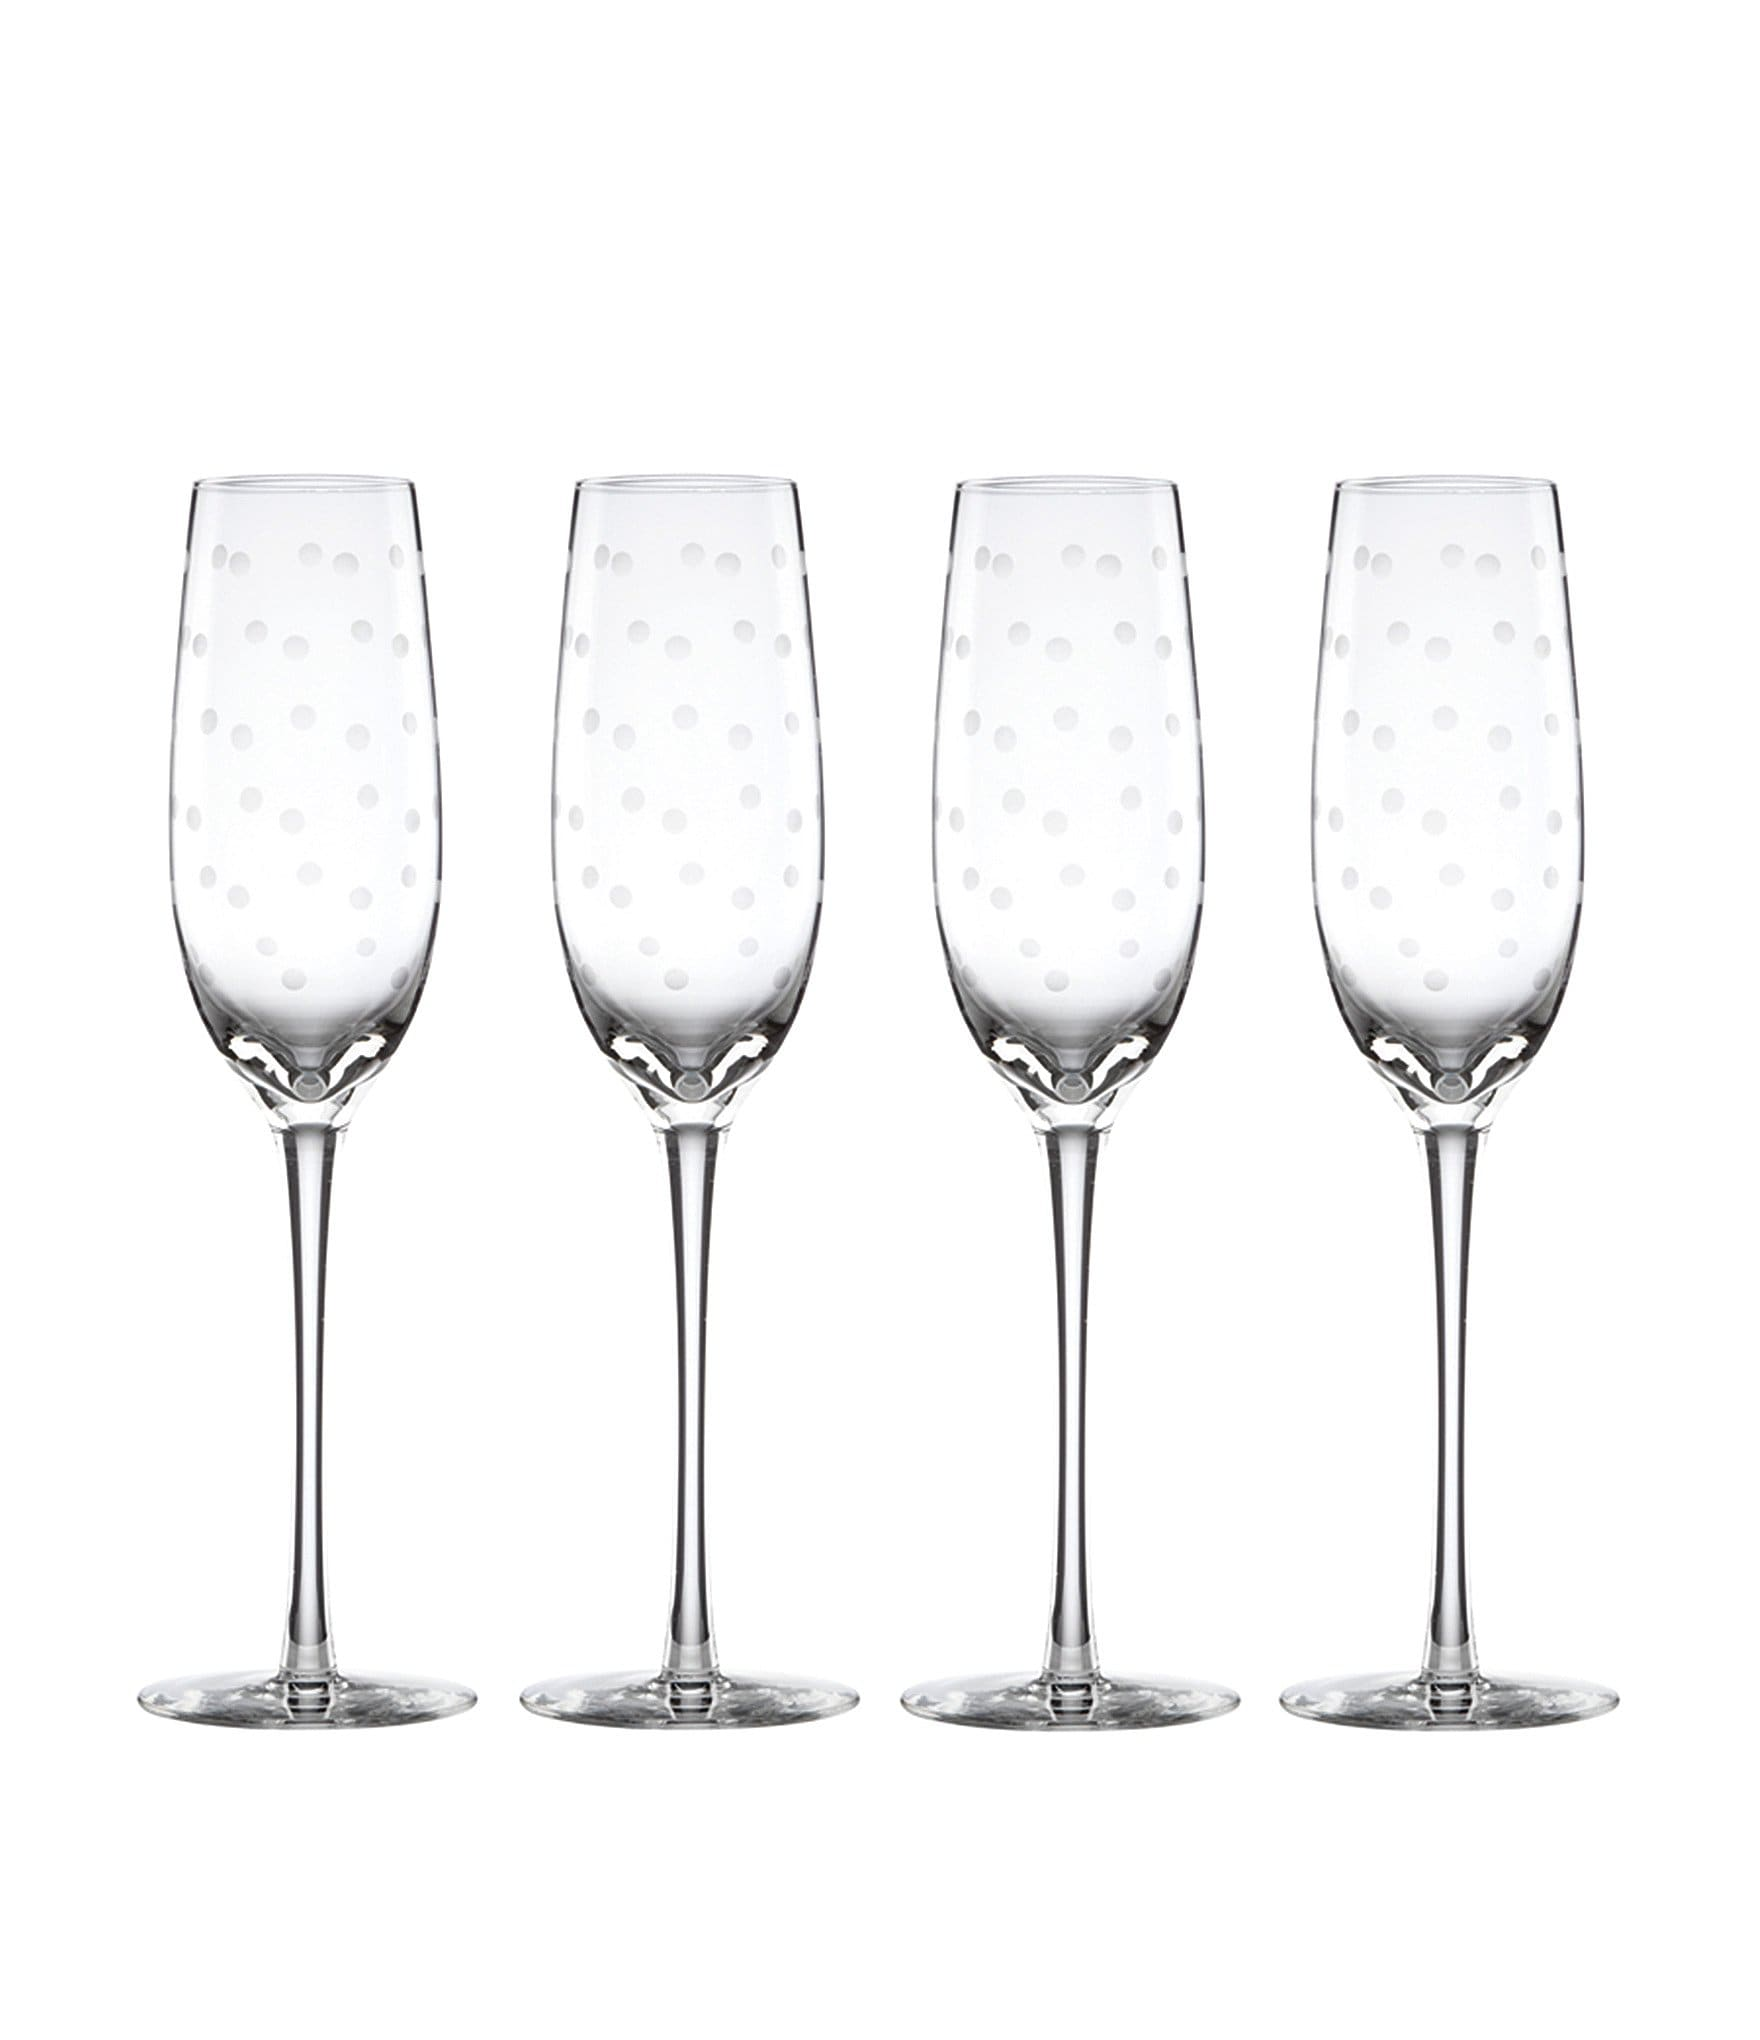 Kate Spade New York Larabee Road 4 Piece Dotted Crystal